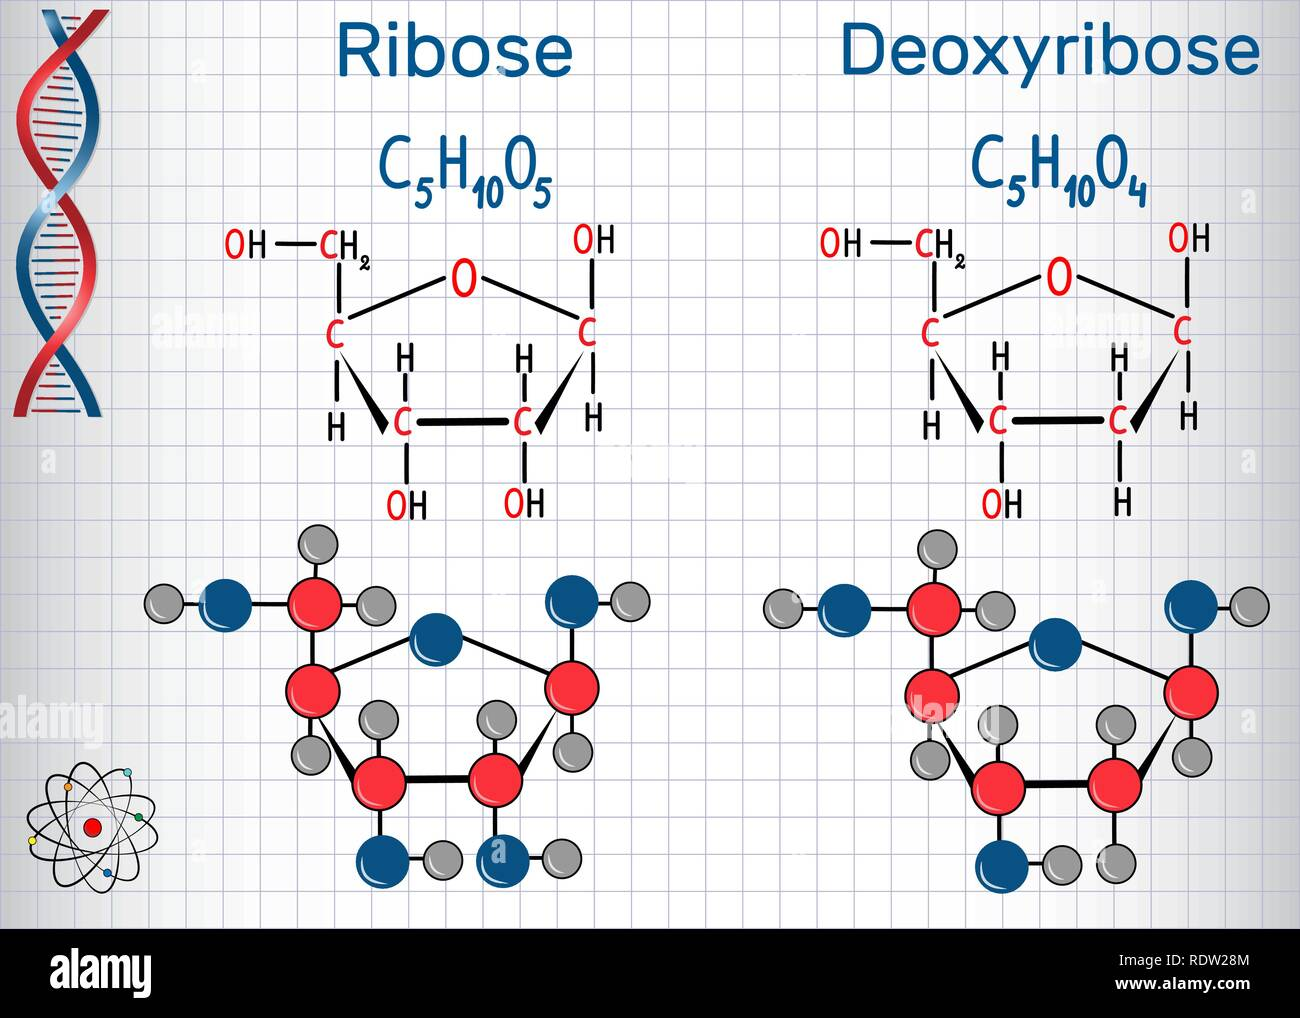 Ribose and deoxyribose molecules, they are monosaccharides and form part of the backbone of DNA and RNA. Structural chemical formula and molecule mode - Stock Image